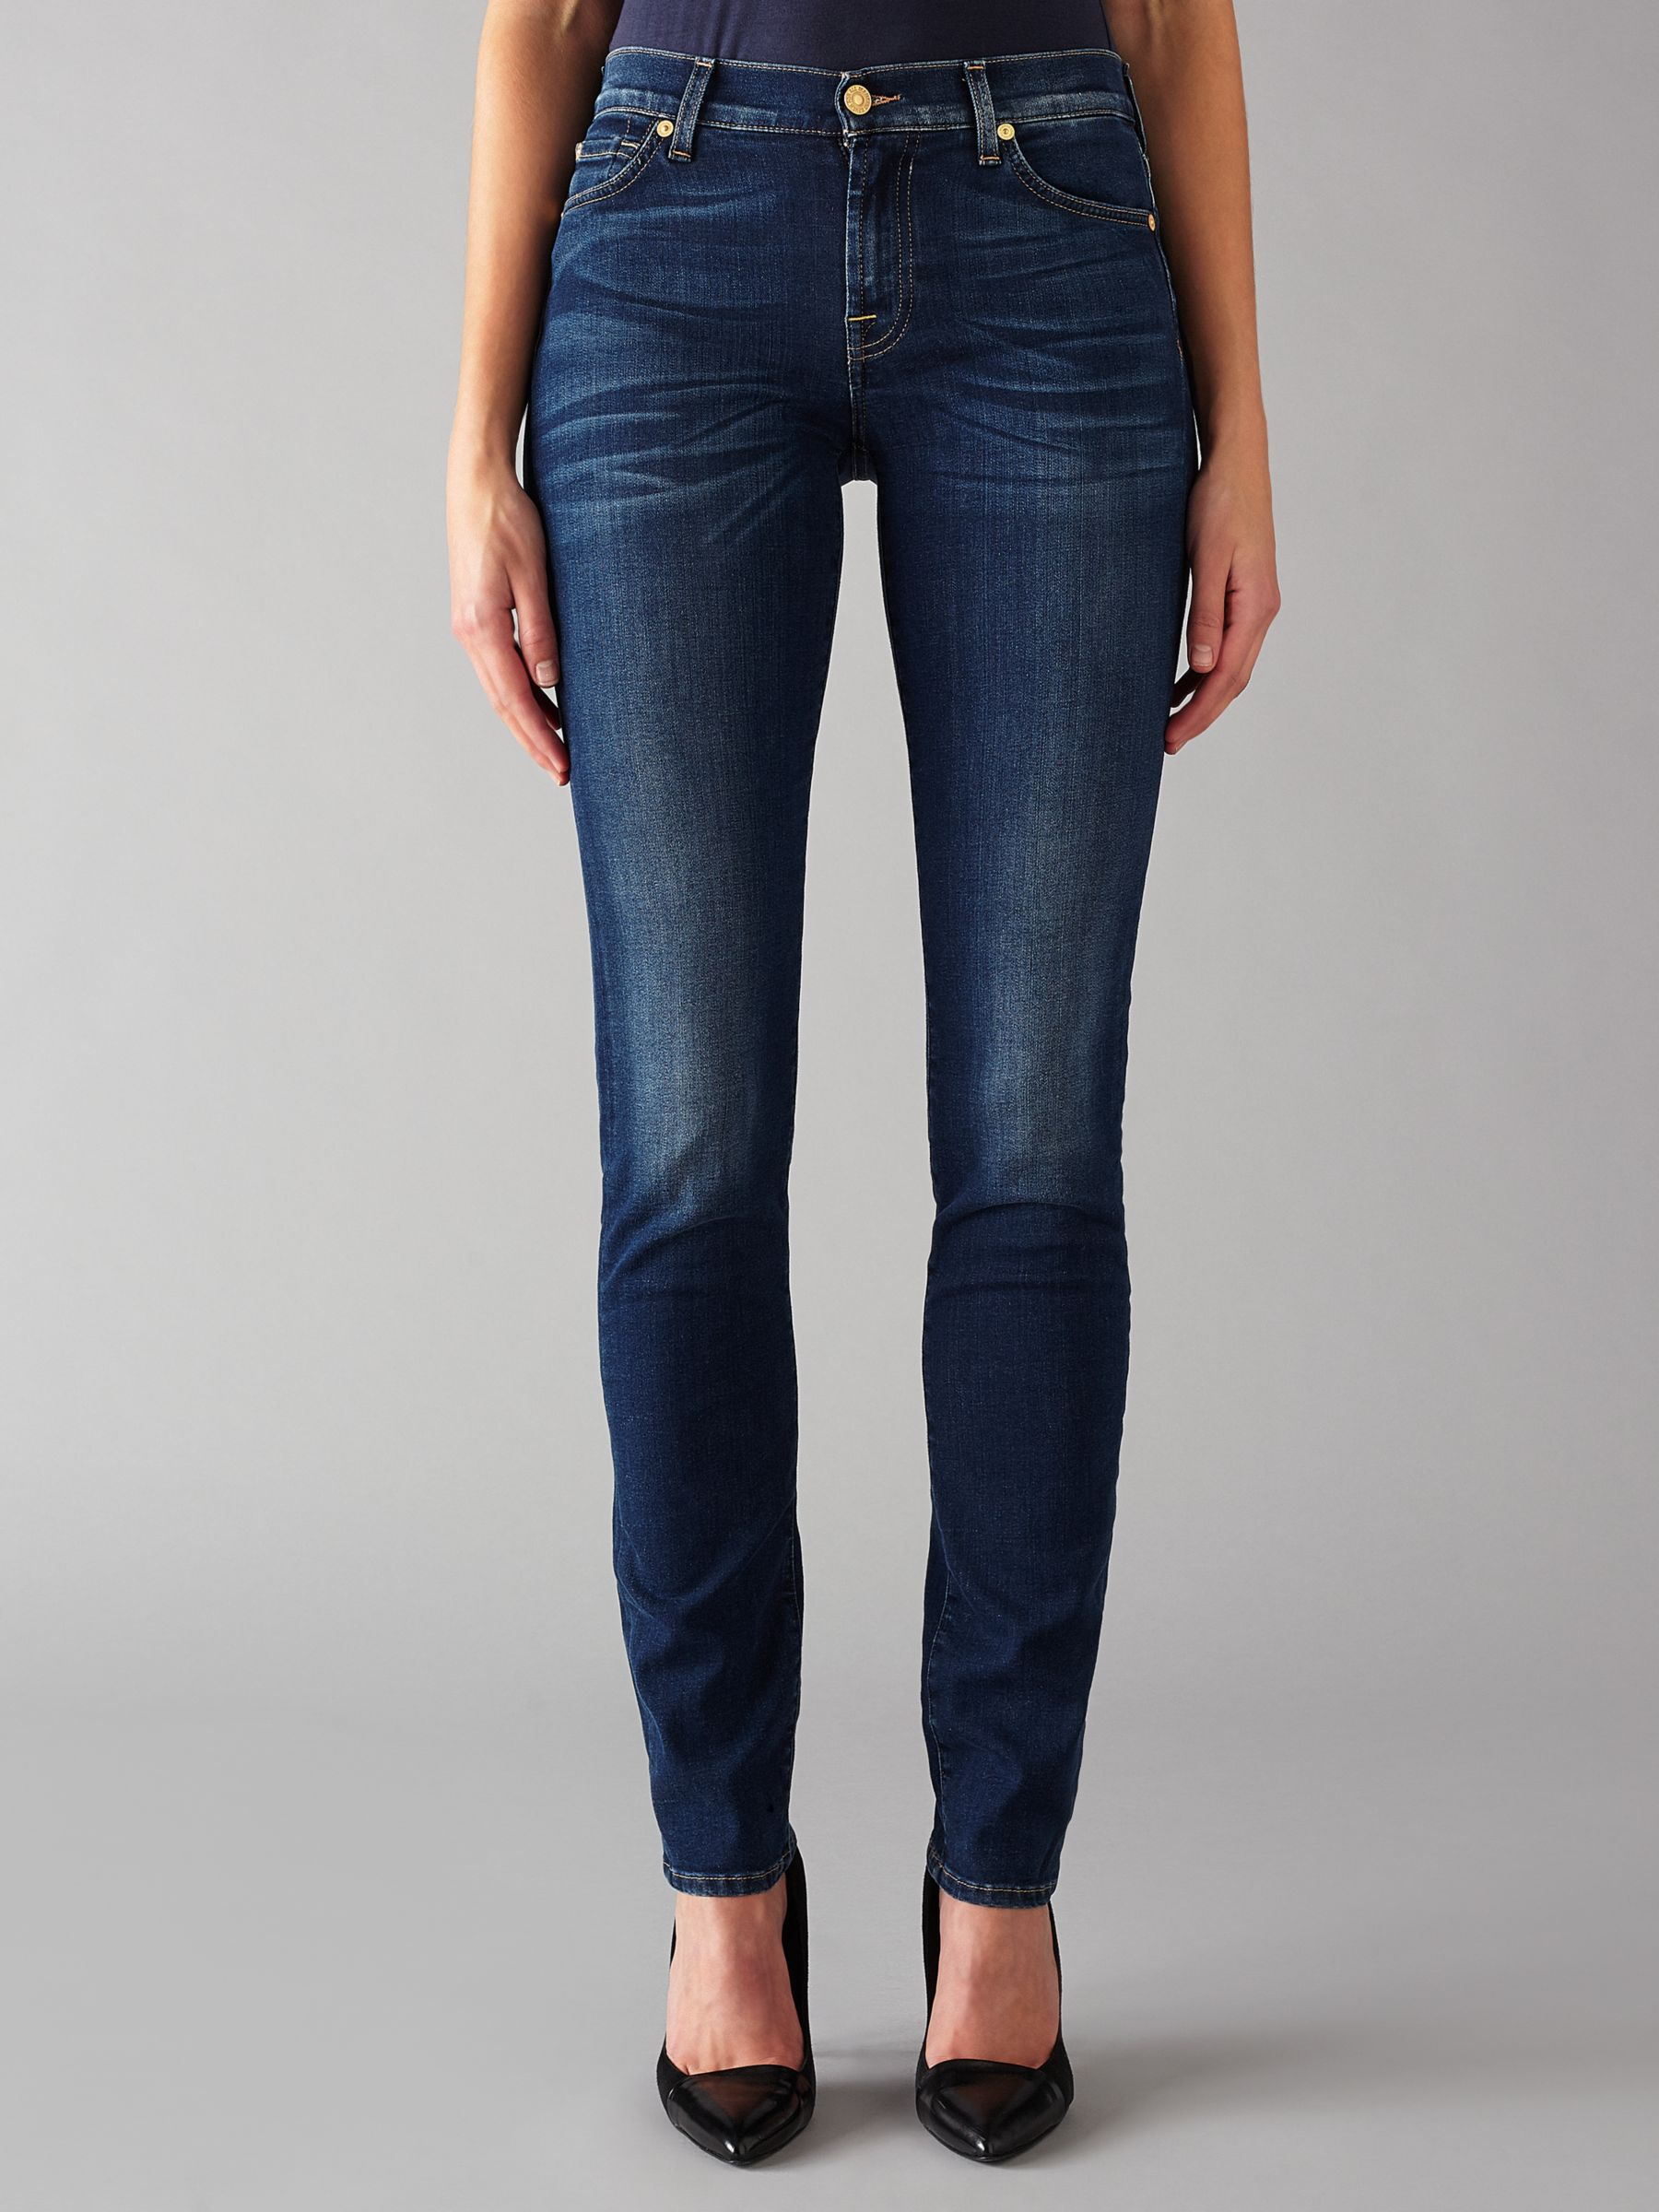 7 For All Mankind 7 For All Mankind Roxanne Mid Rise B(air) Slim Jeans, Duchess